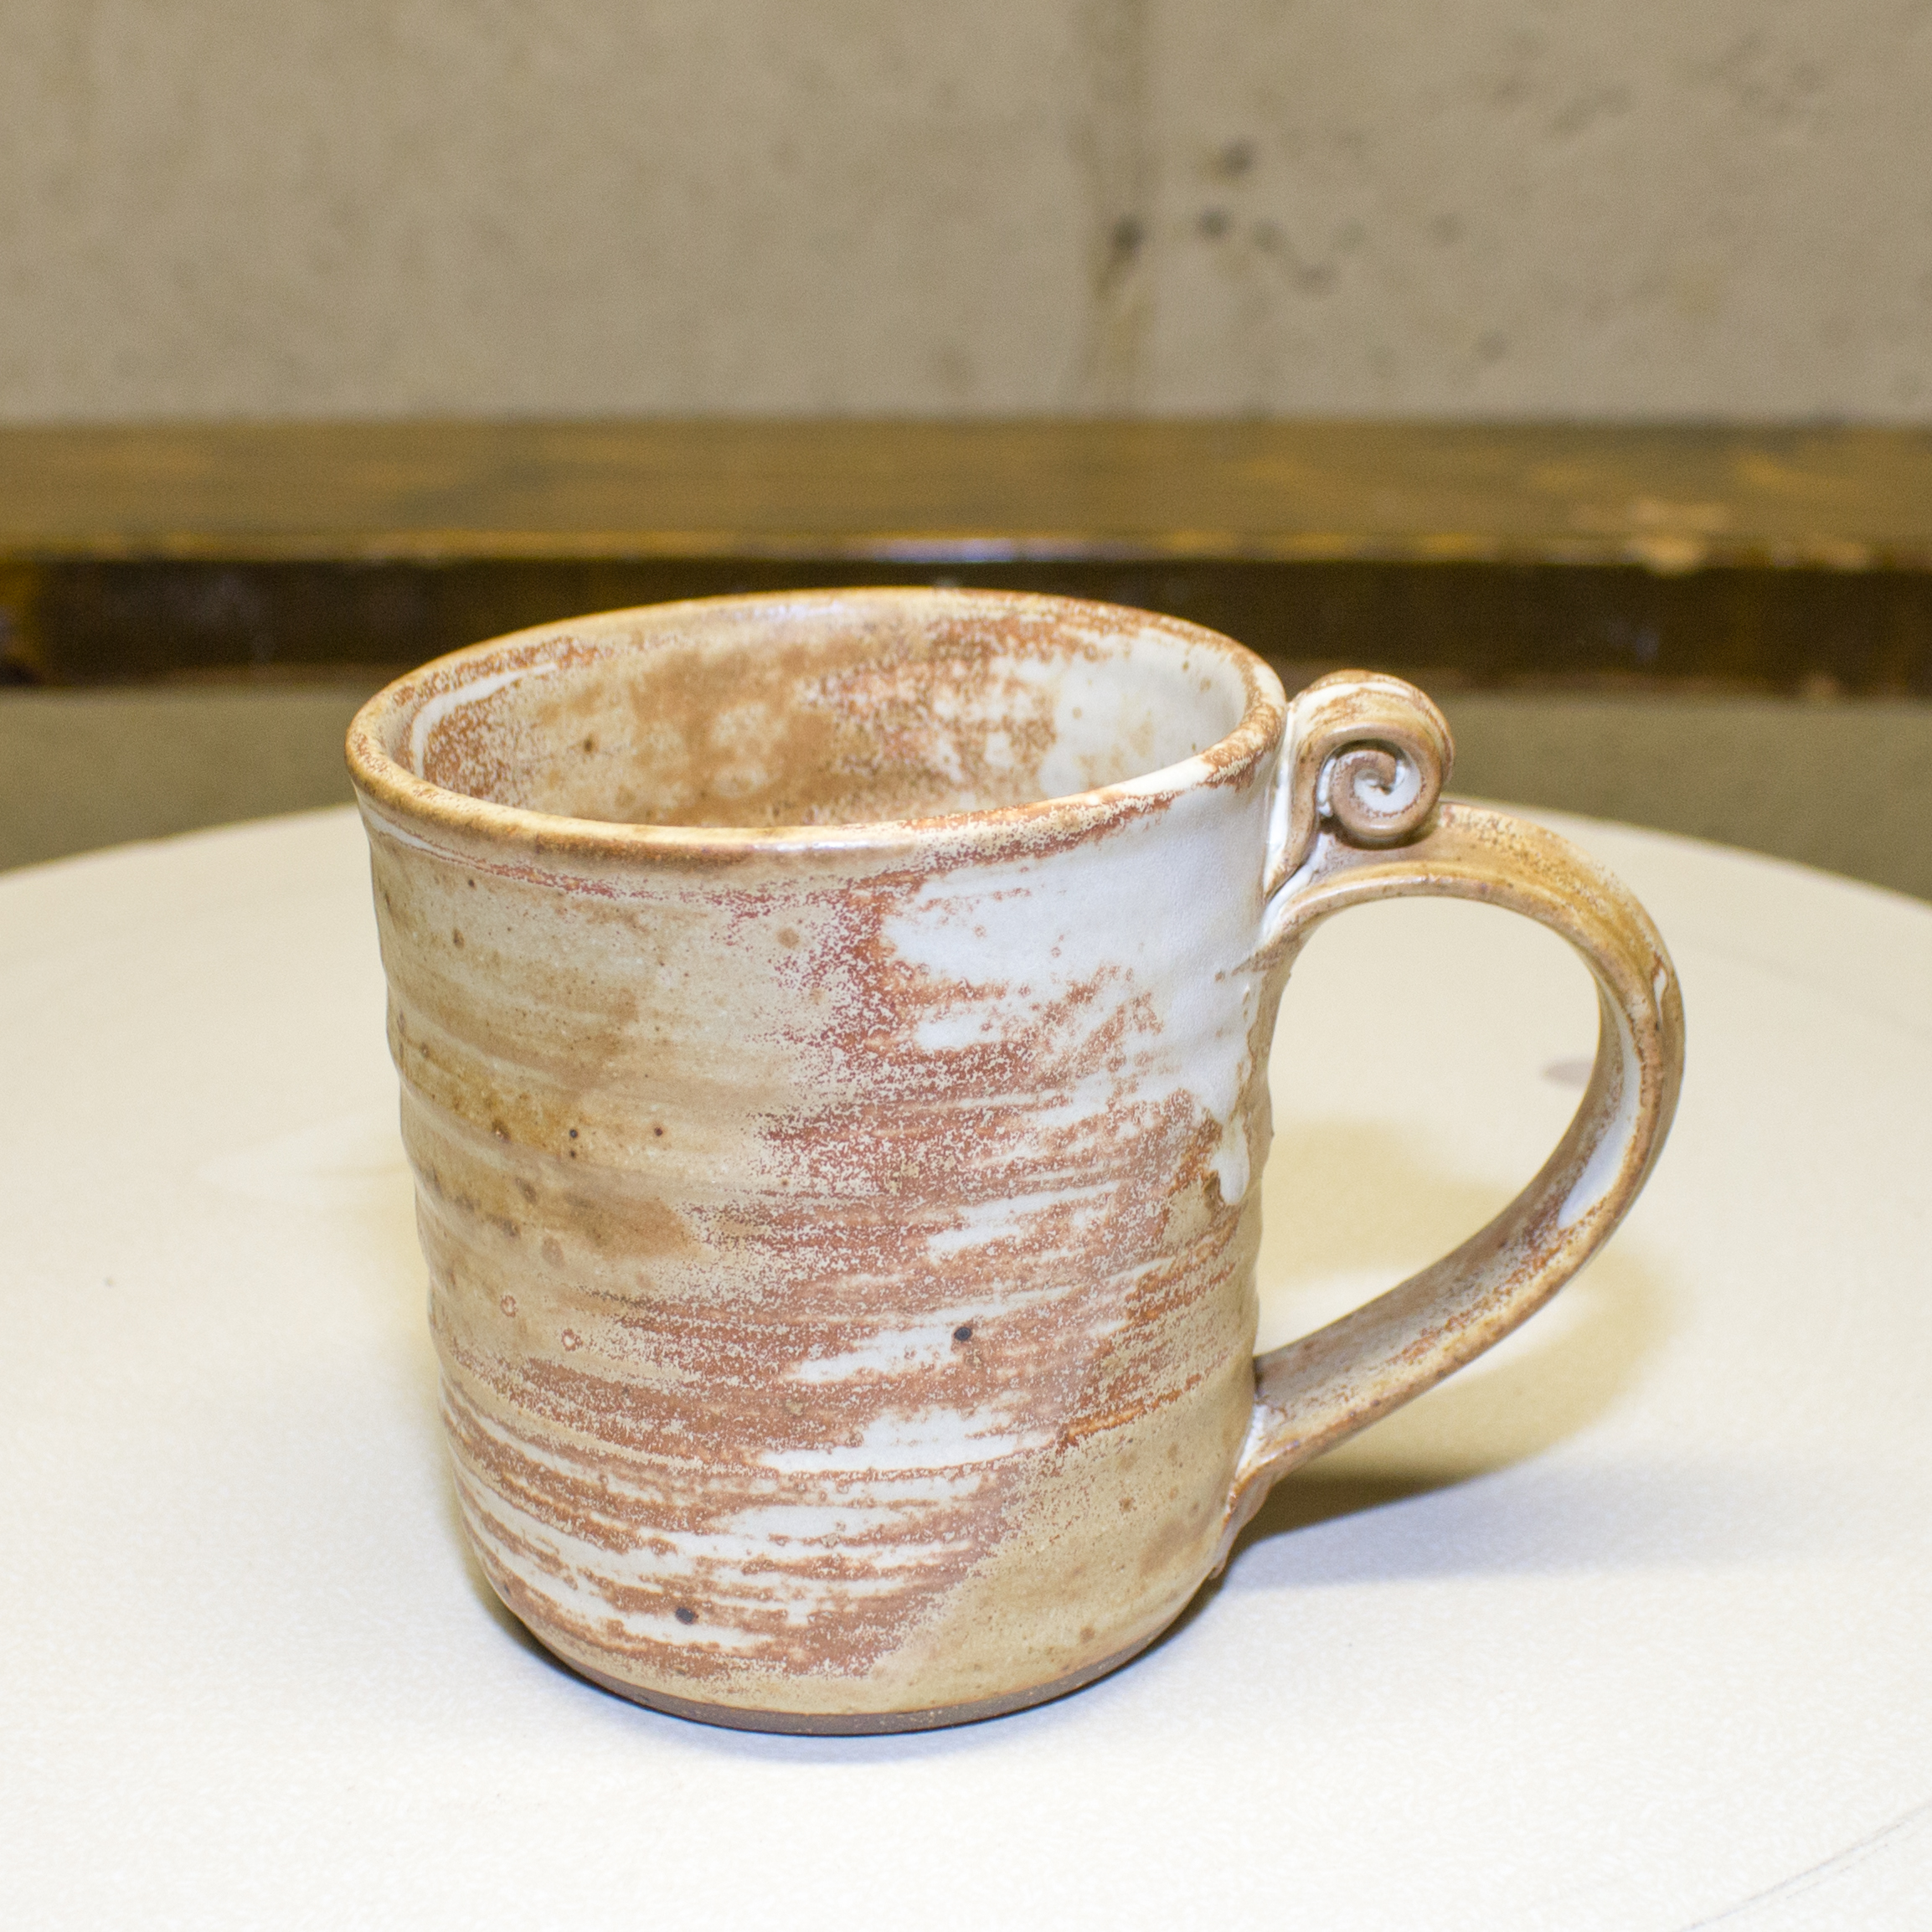 Mug- Matt Brown and Chestnut 4x3 in (NFS